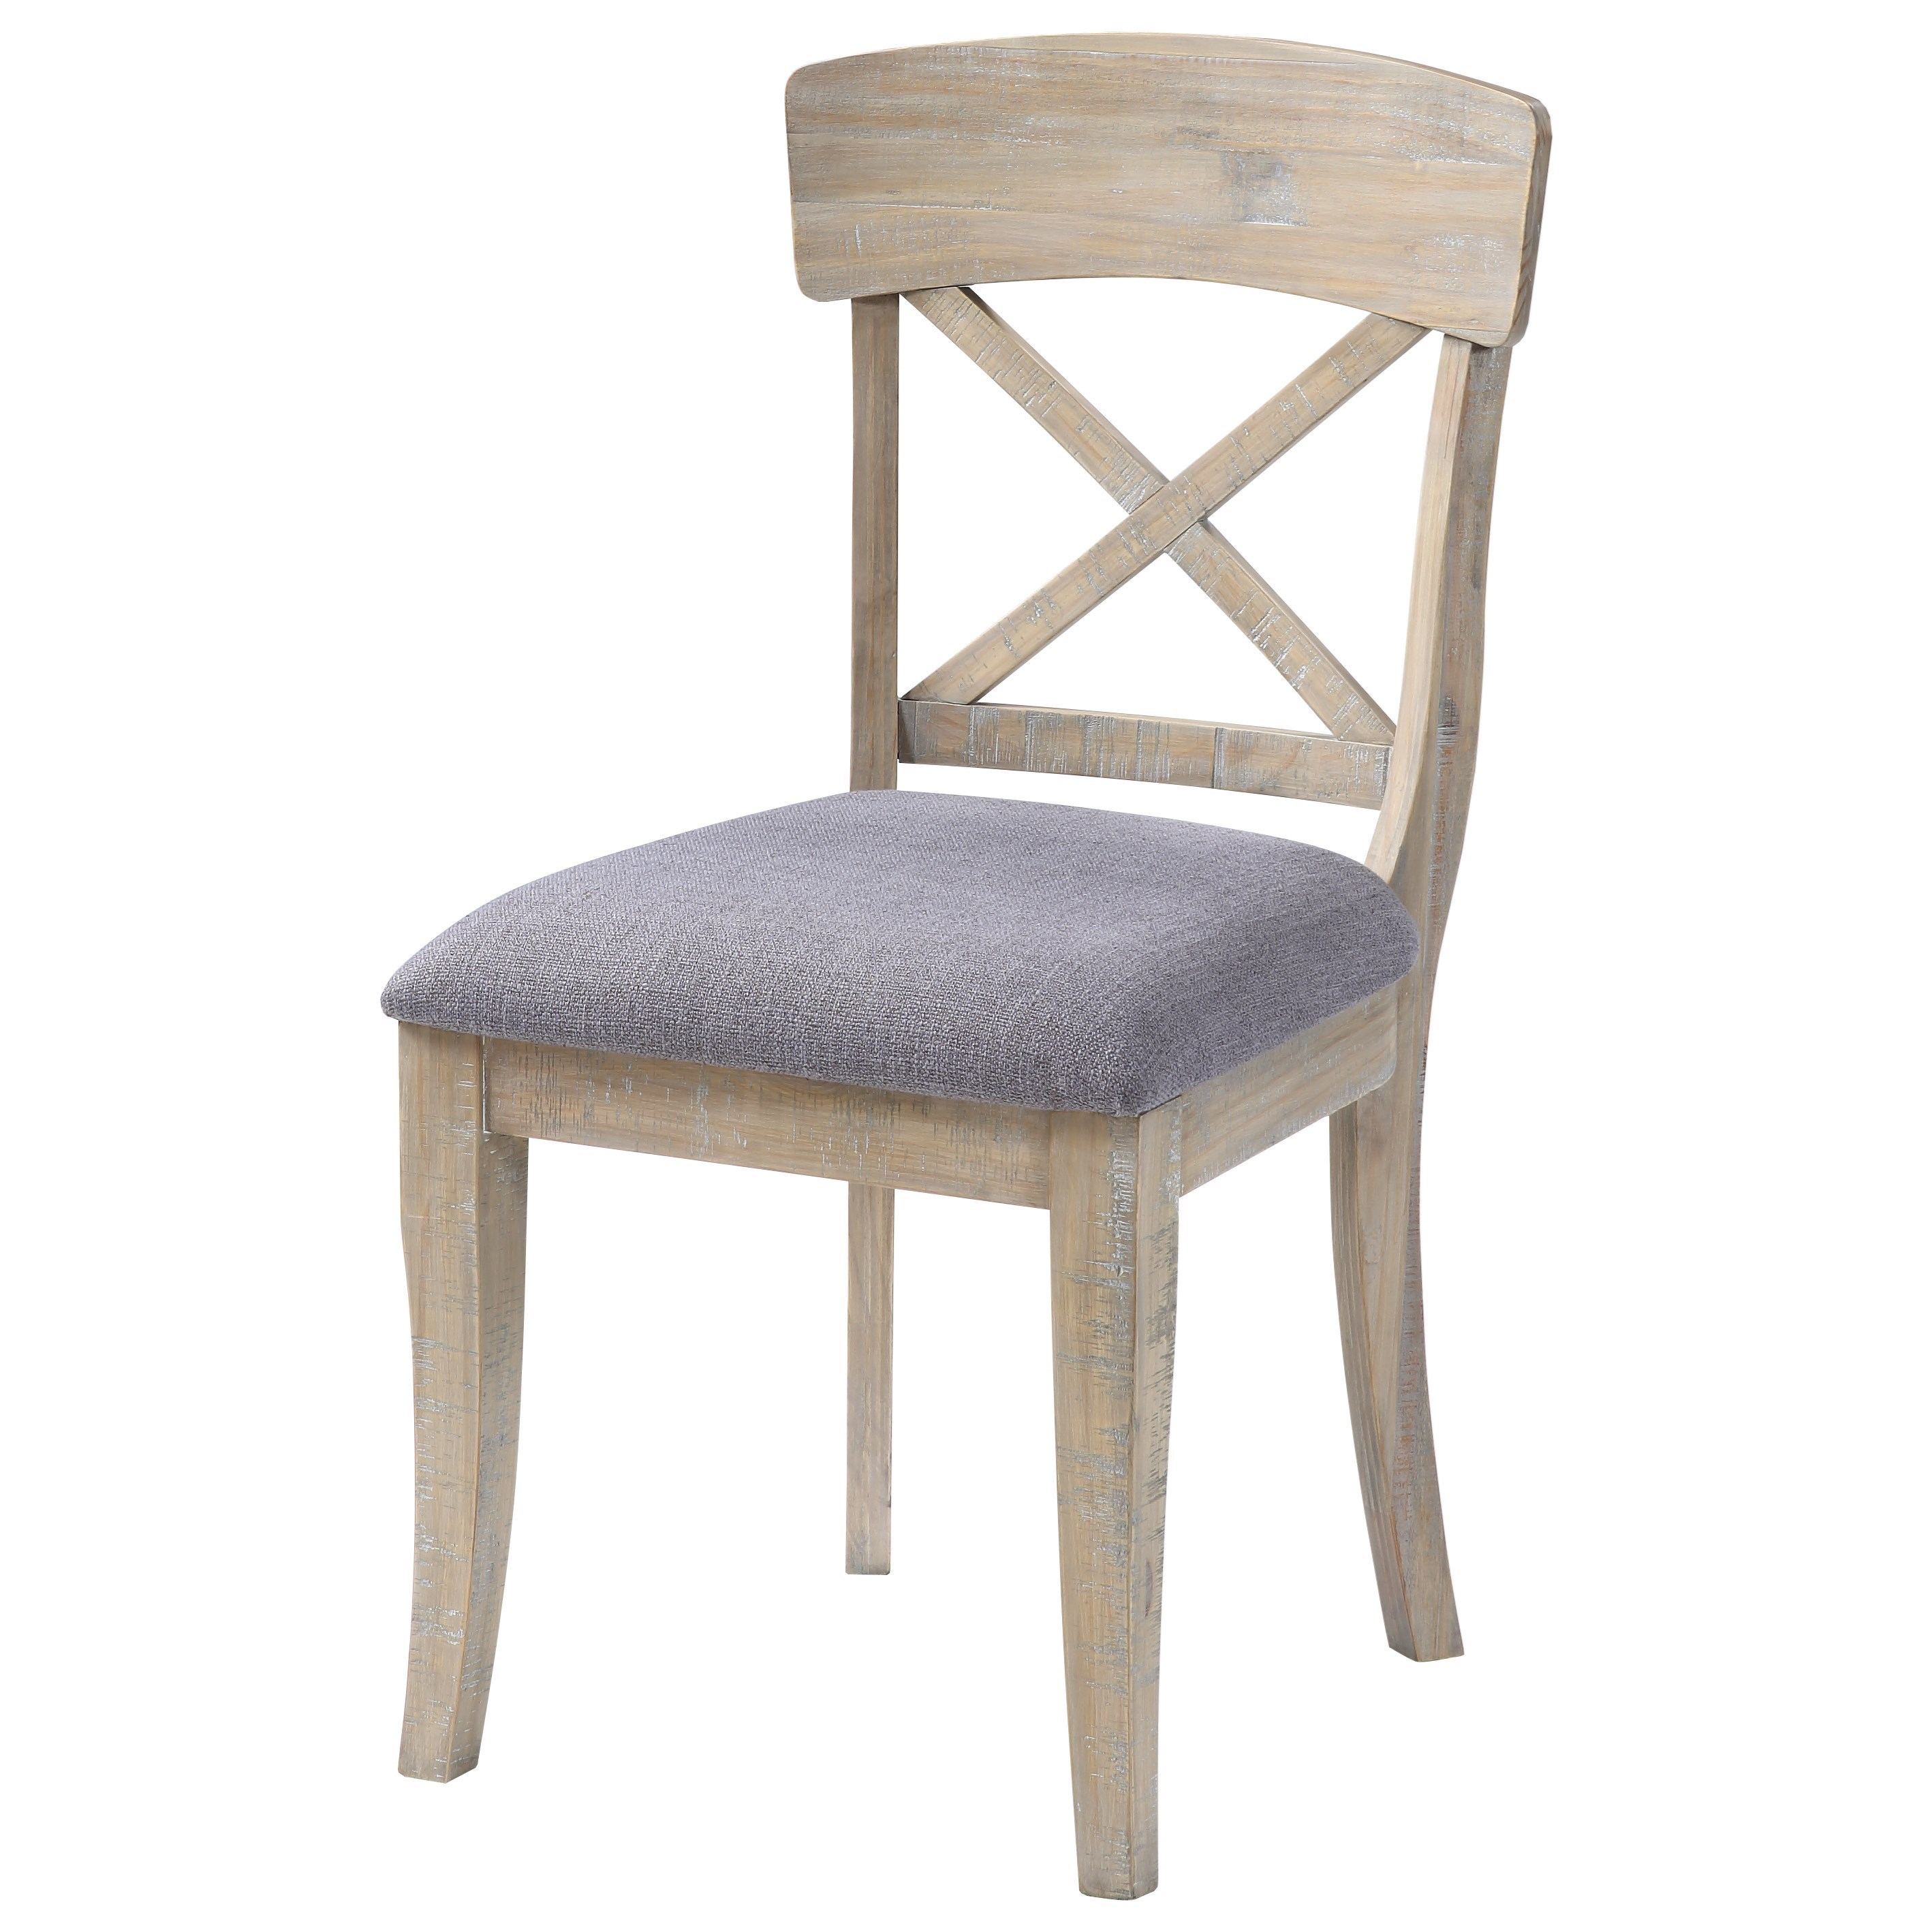 Barrister Dining Chair by Coast to Coast Imports at Baer's Furniture